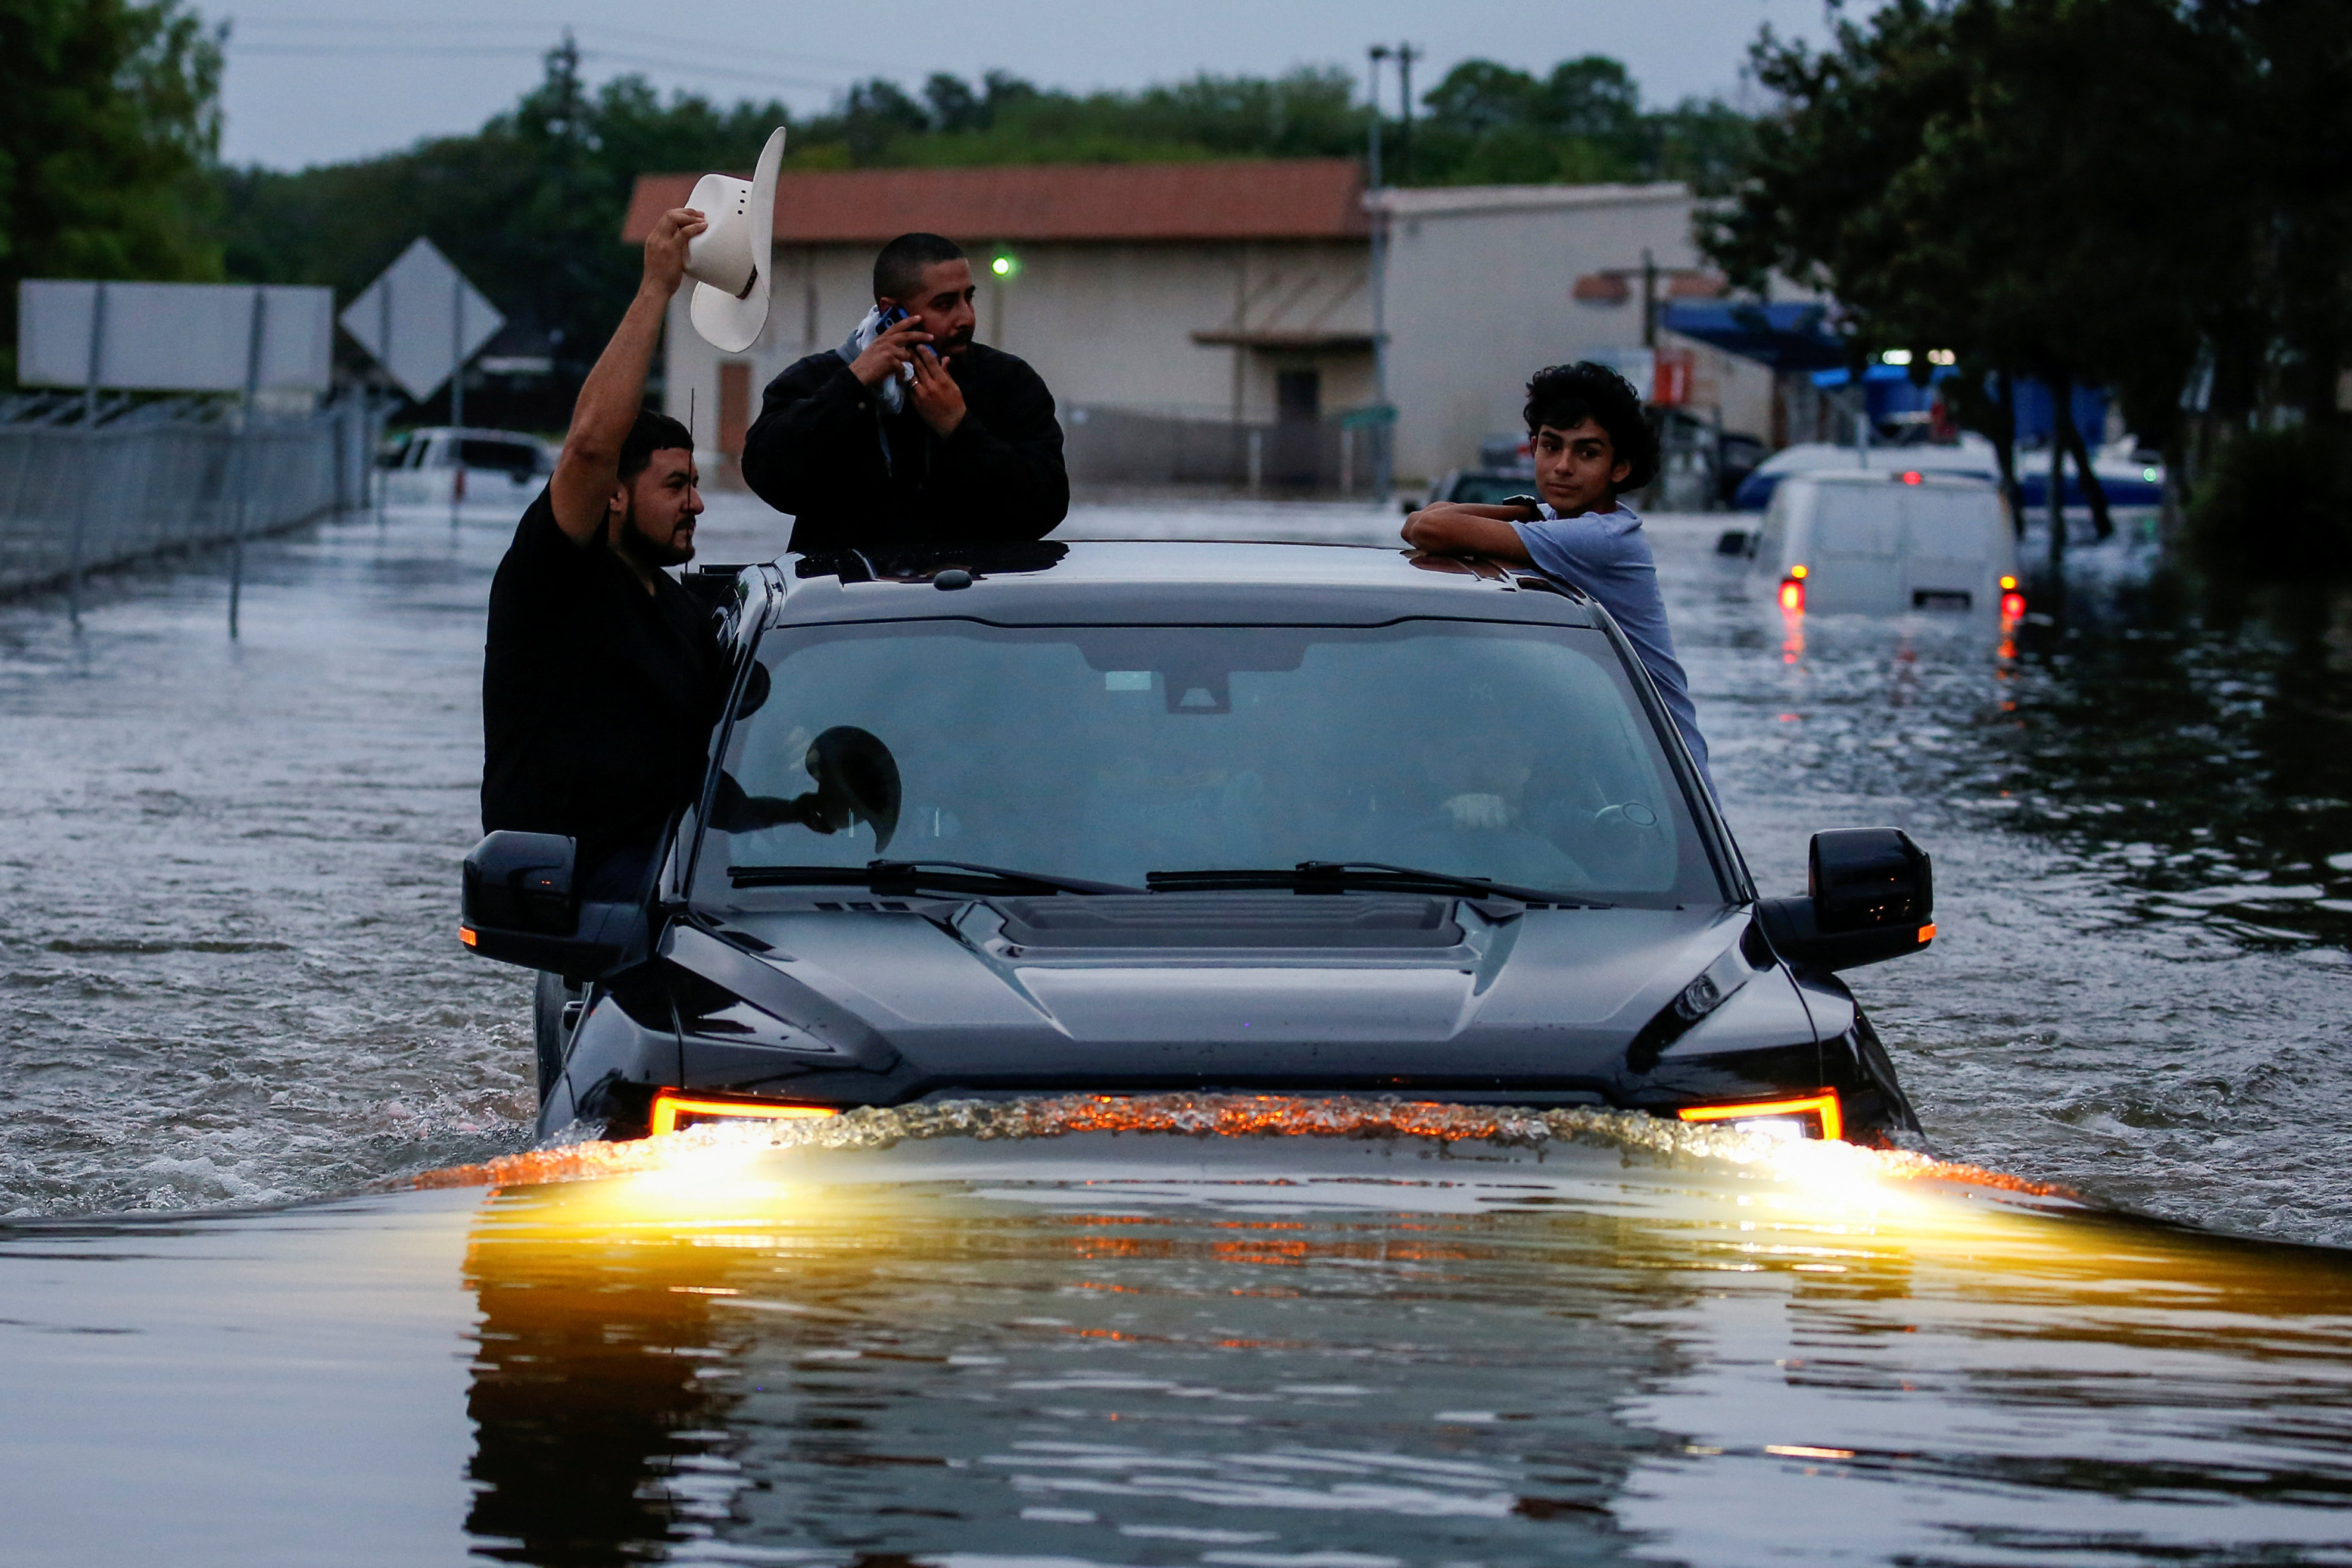 Residents use a truck to navigate through flood waters from Tropical Storm Harvey in Houston, Texas, U.S. August 27, 2017. (REUTERS/Adrees Latif)